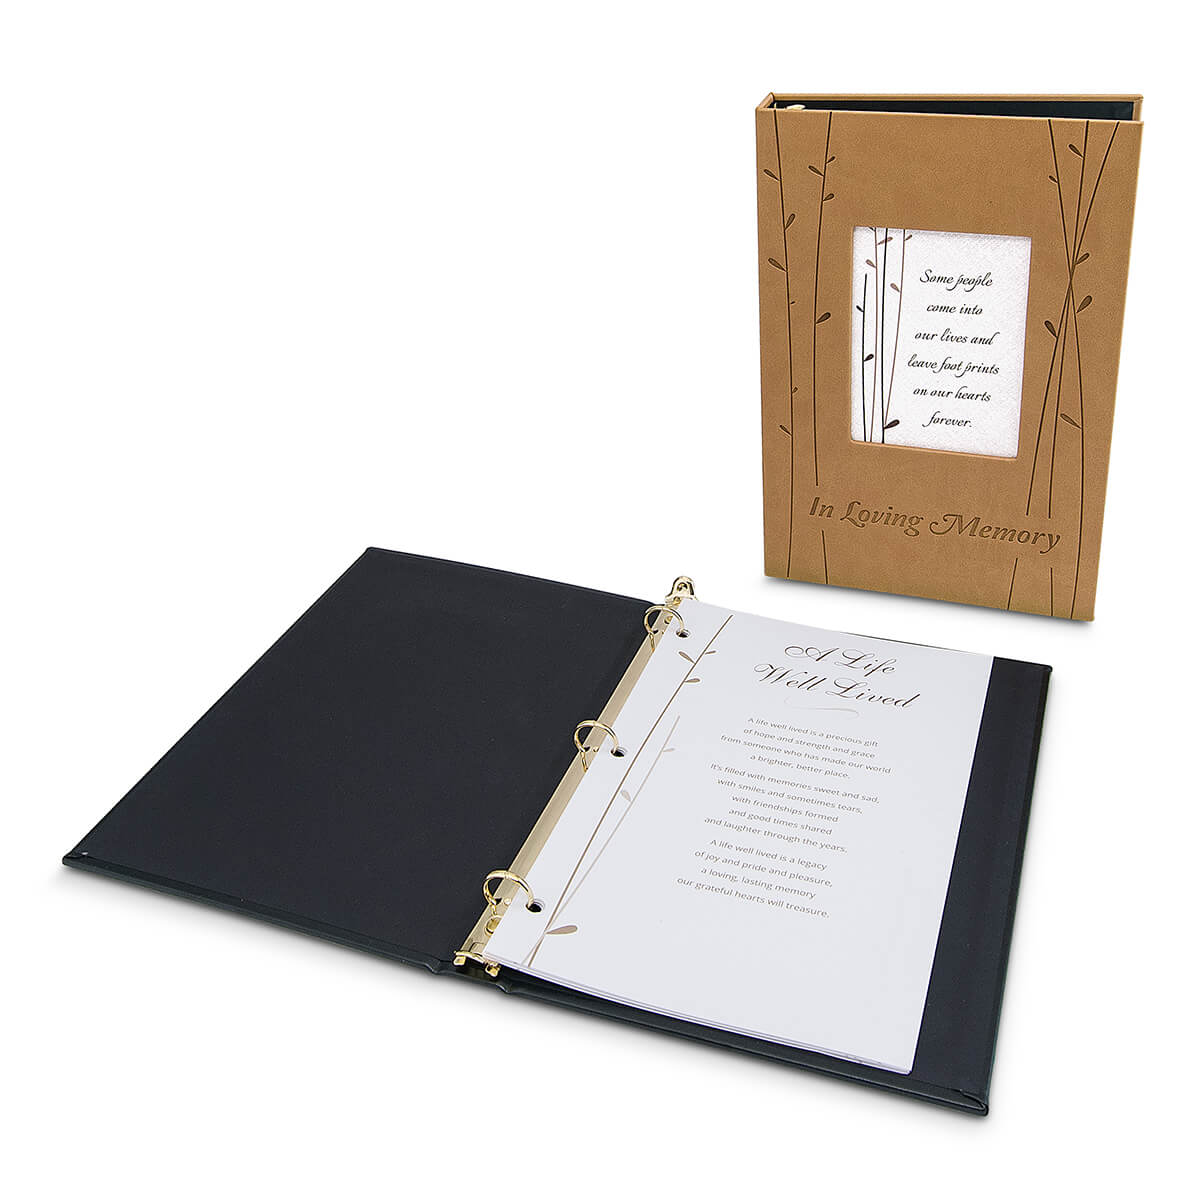 For Advertising, Retail And Marketing Custom Binders